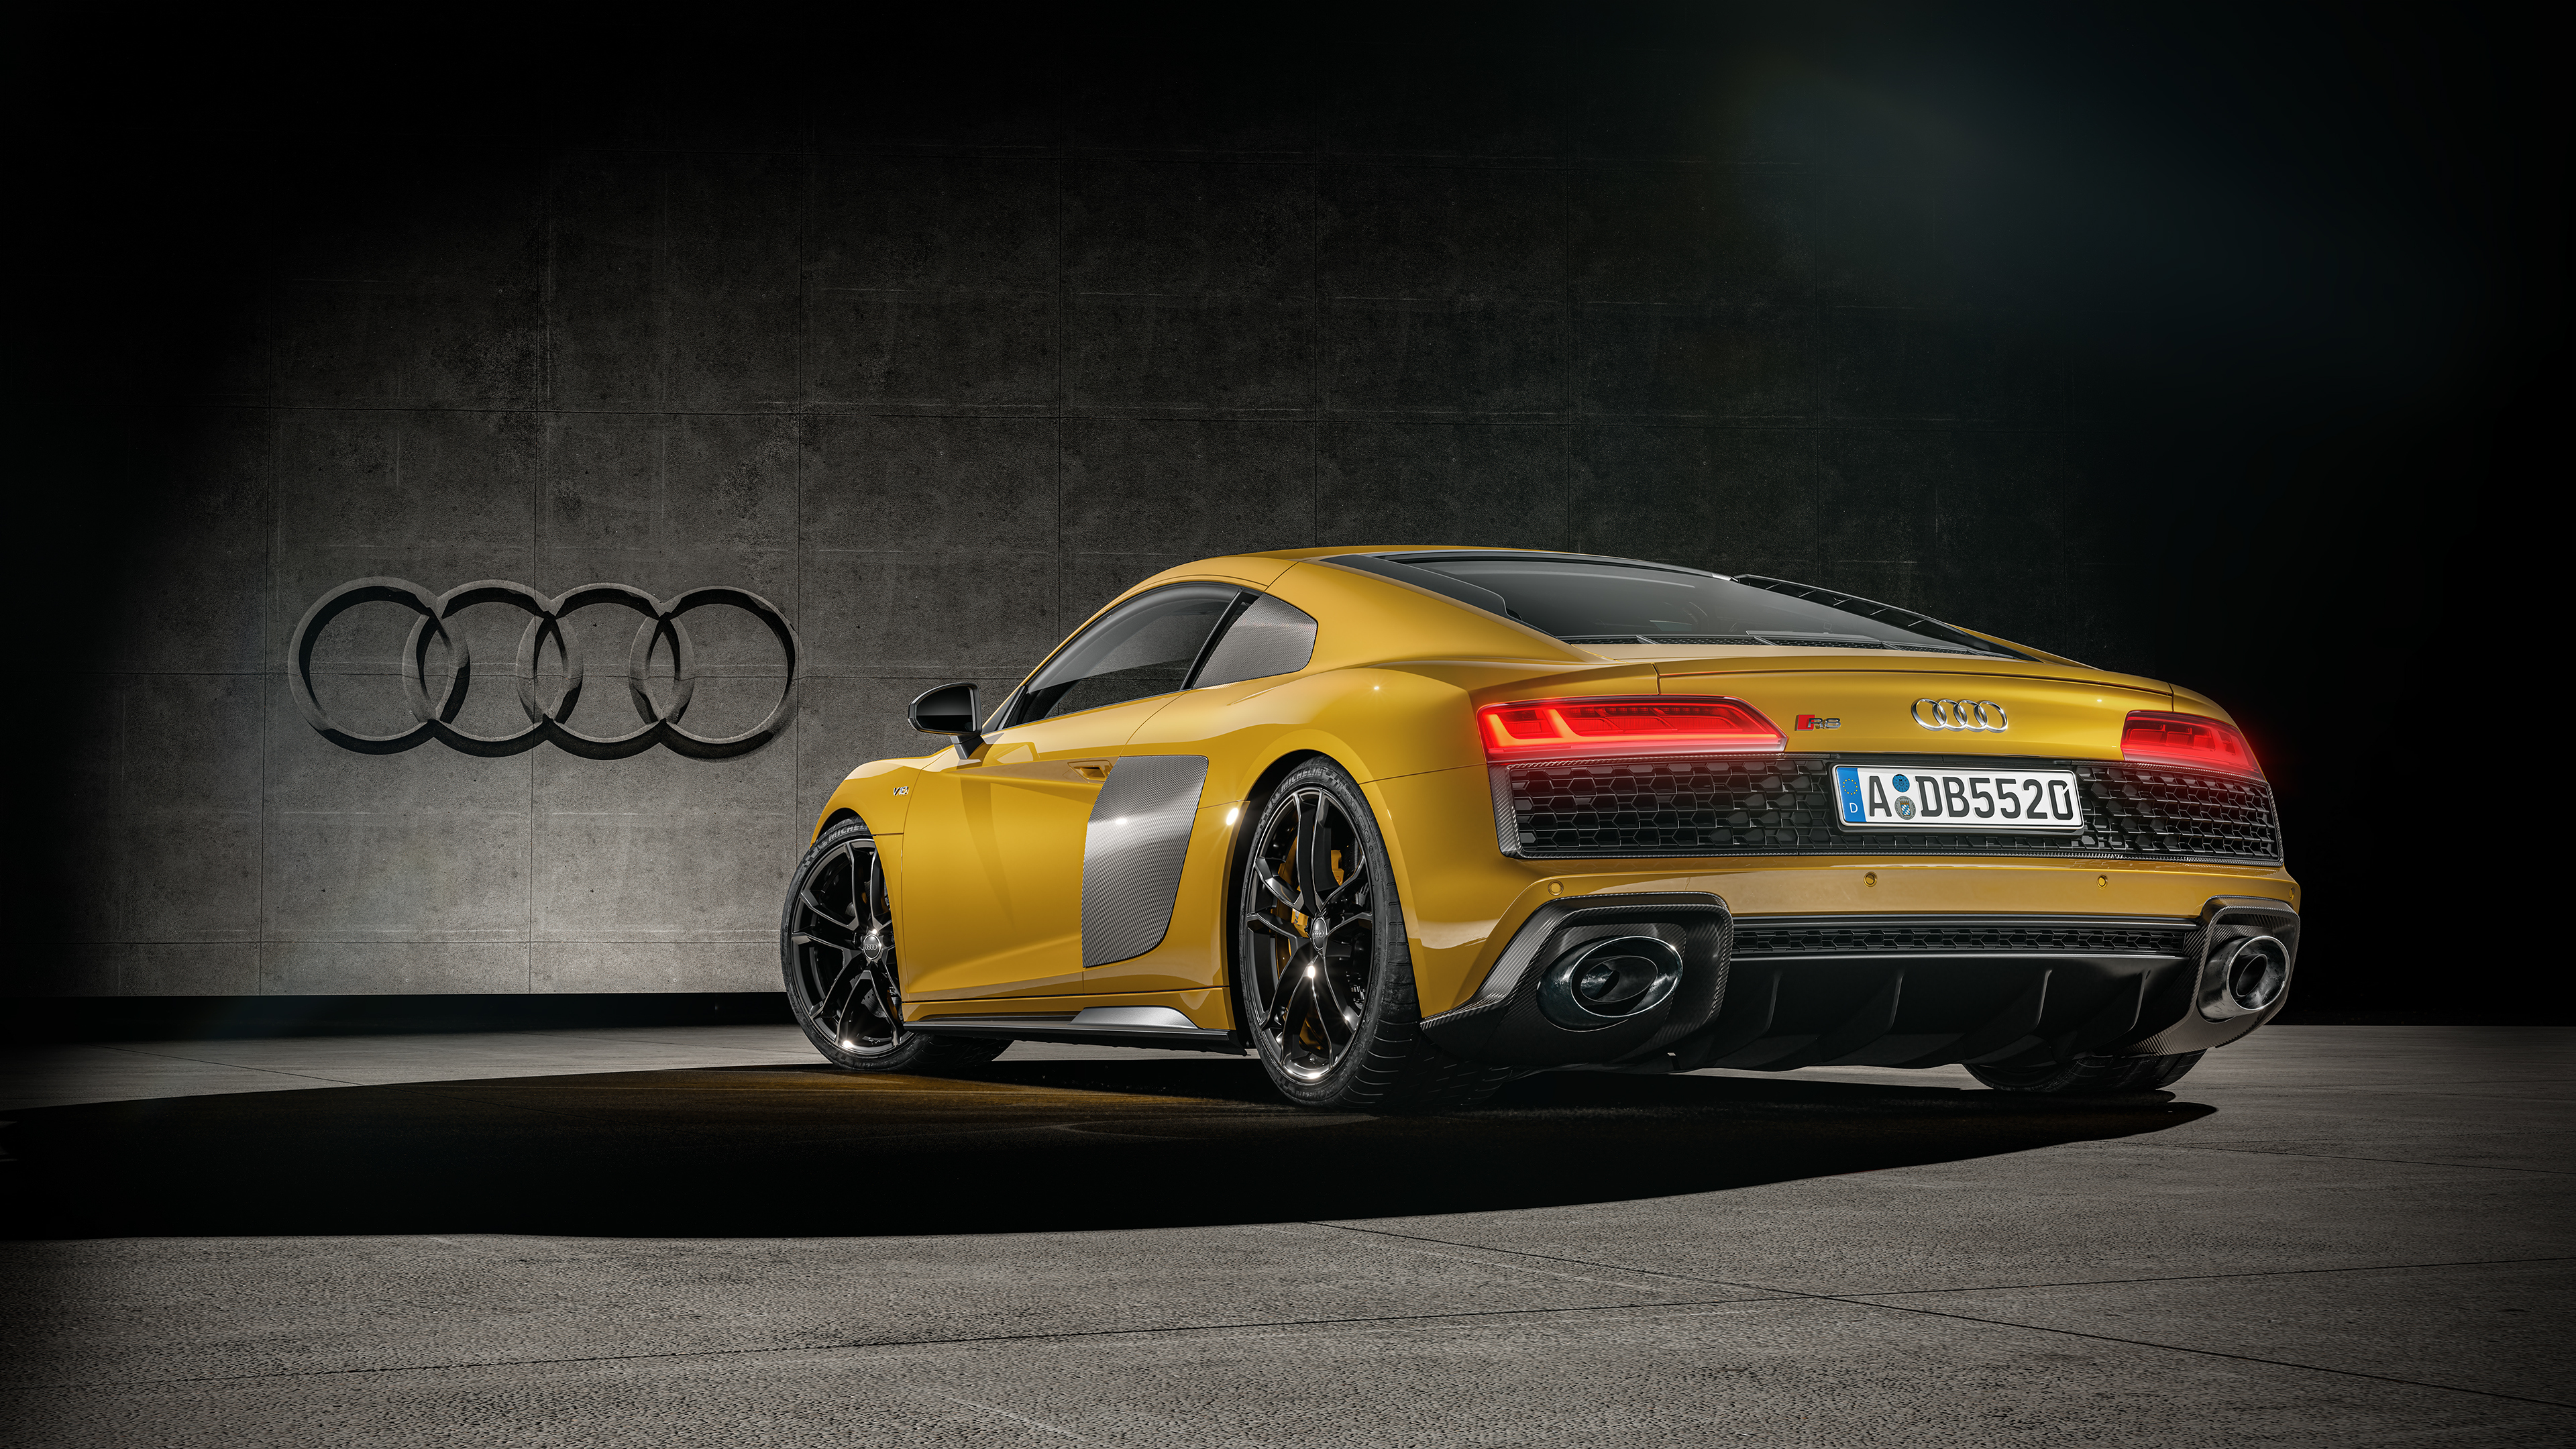 3840x2160 Audi R8 Yellow 2020 4k HD 4k Wallpapers, Images ...